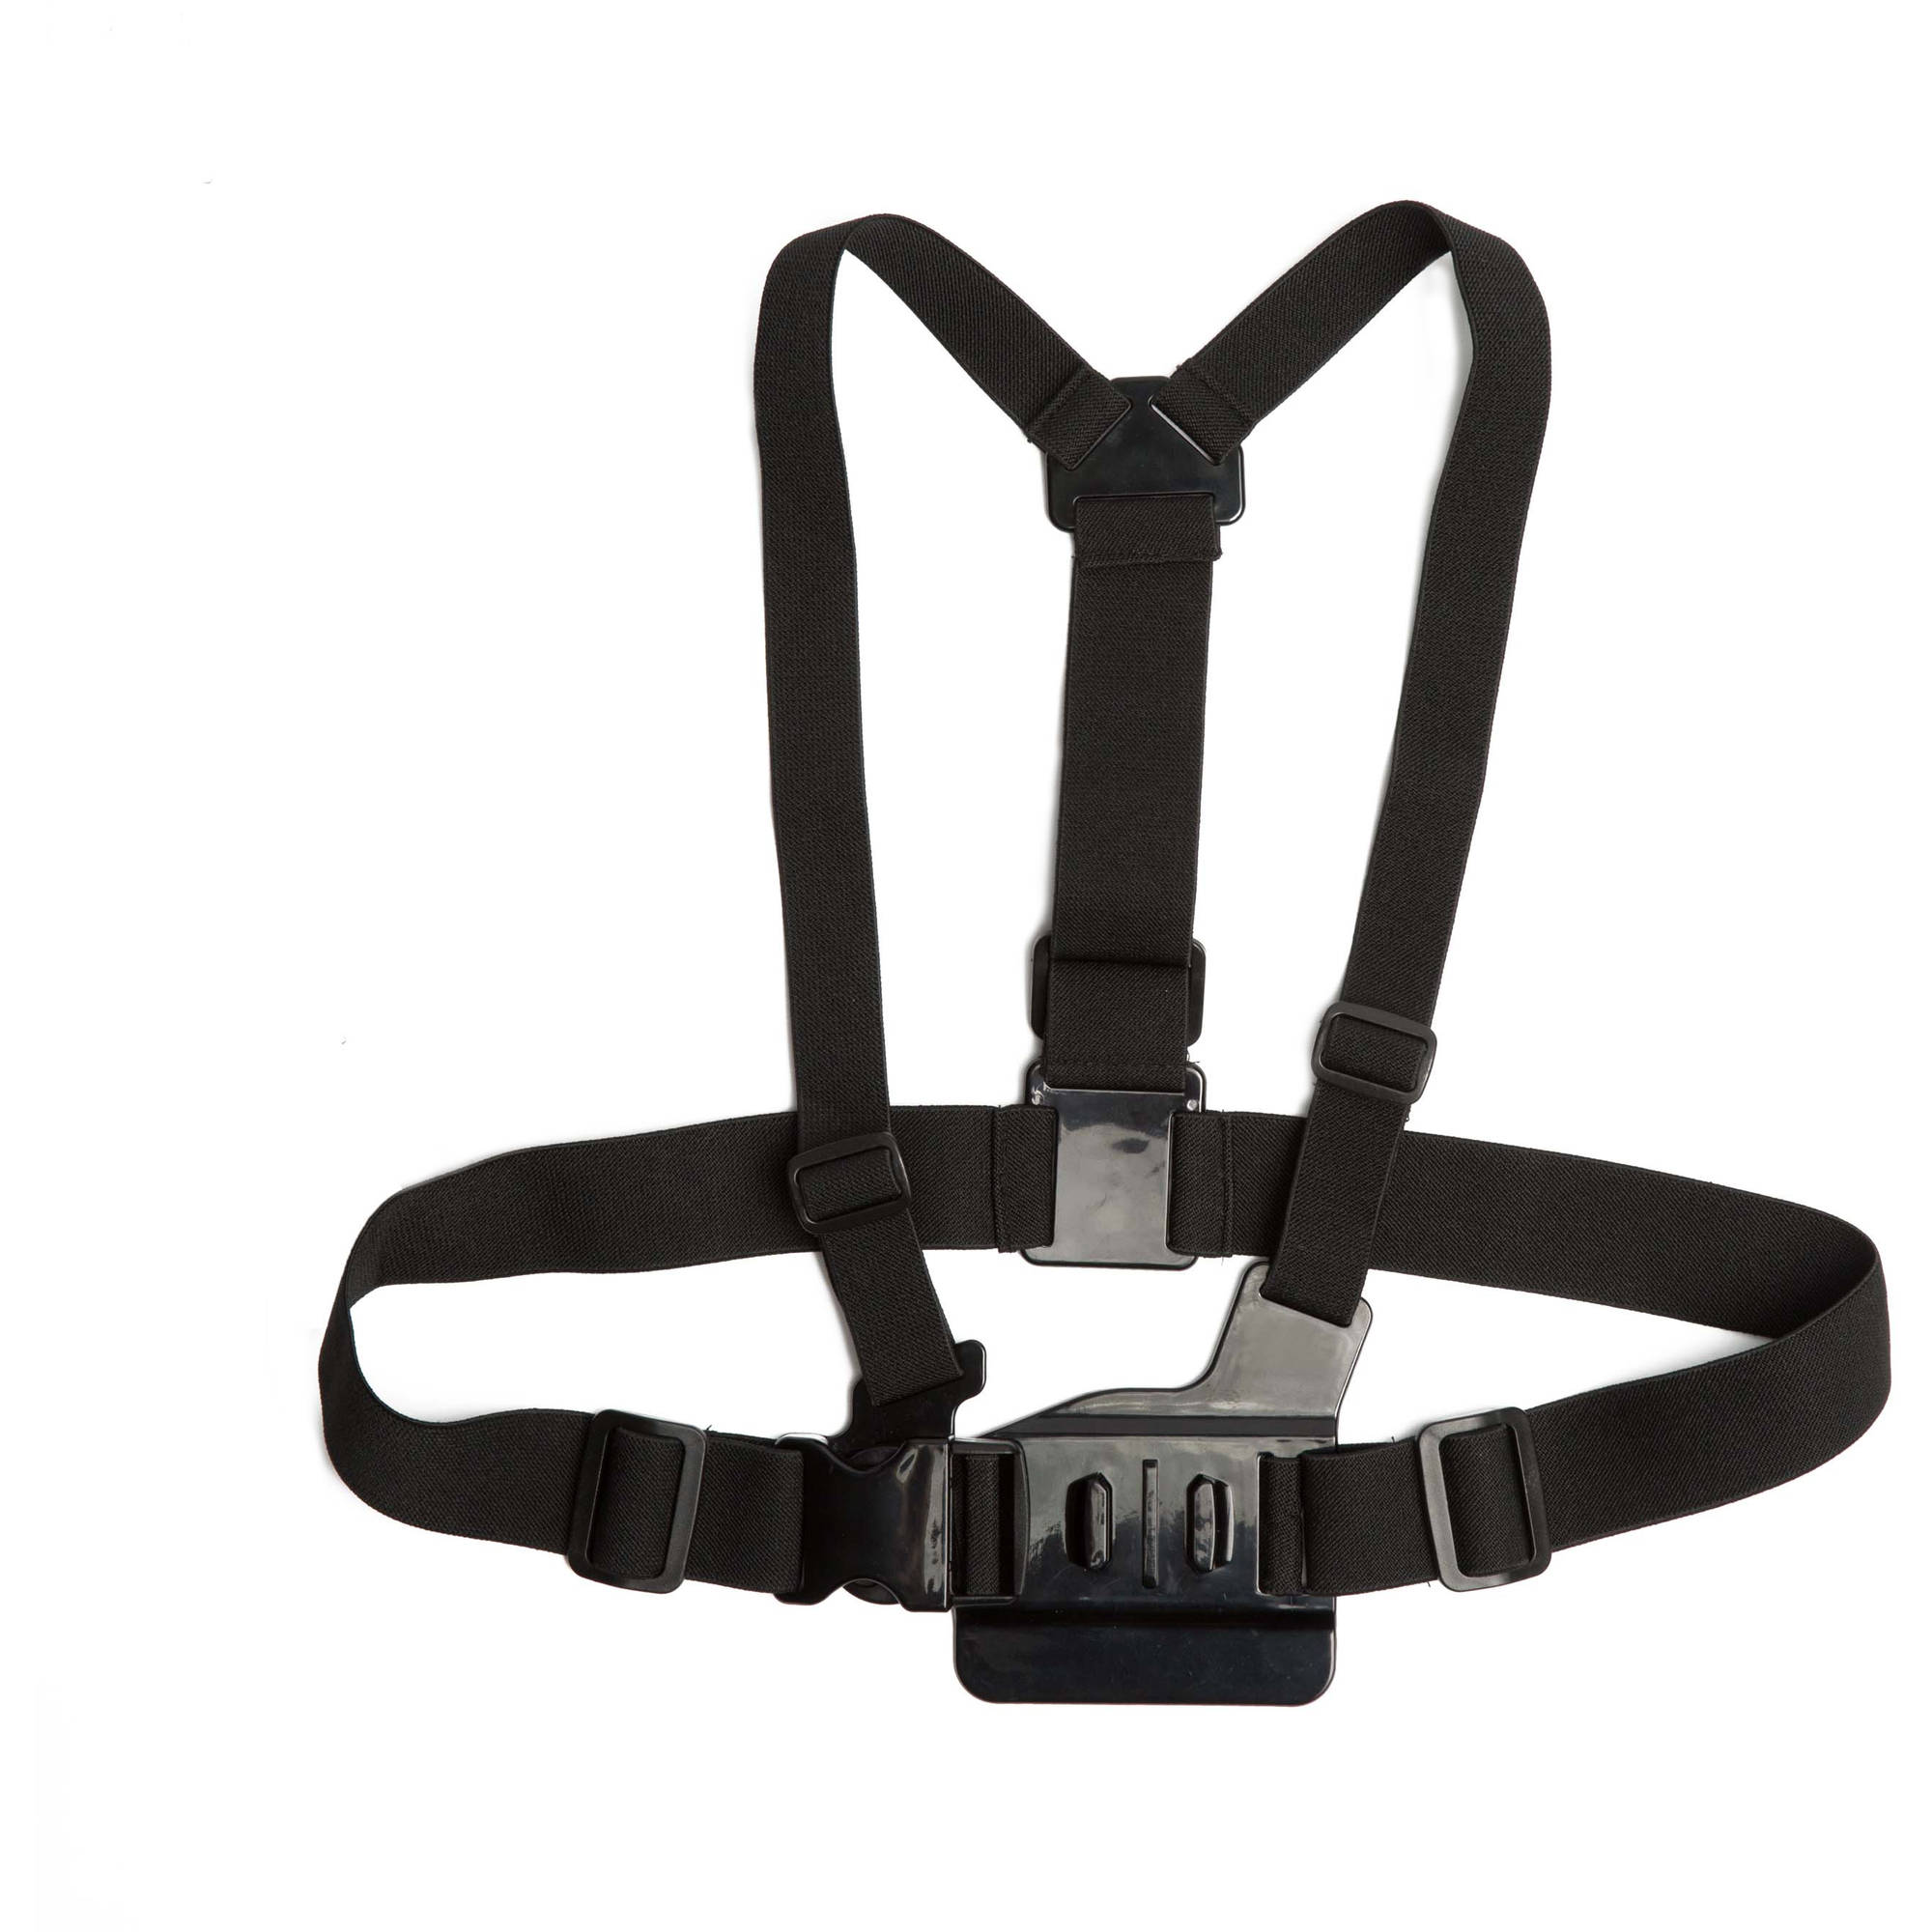 KAYATA Chest and Head strap Compatible with Gopro Hero